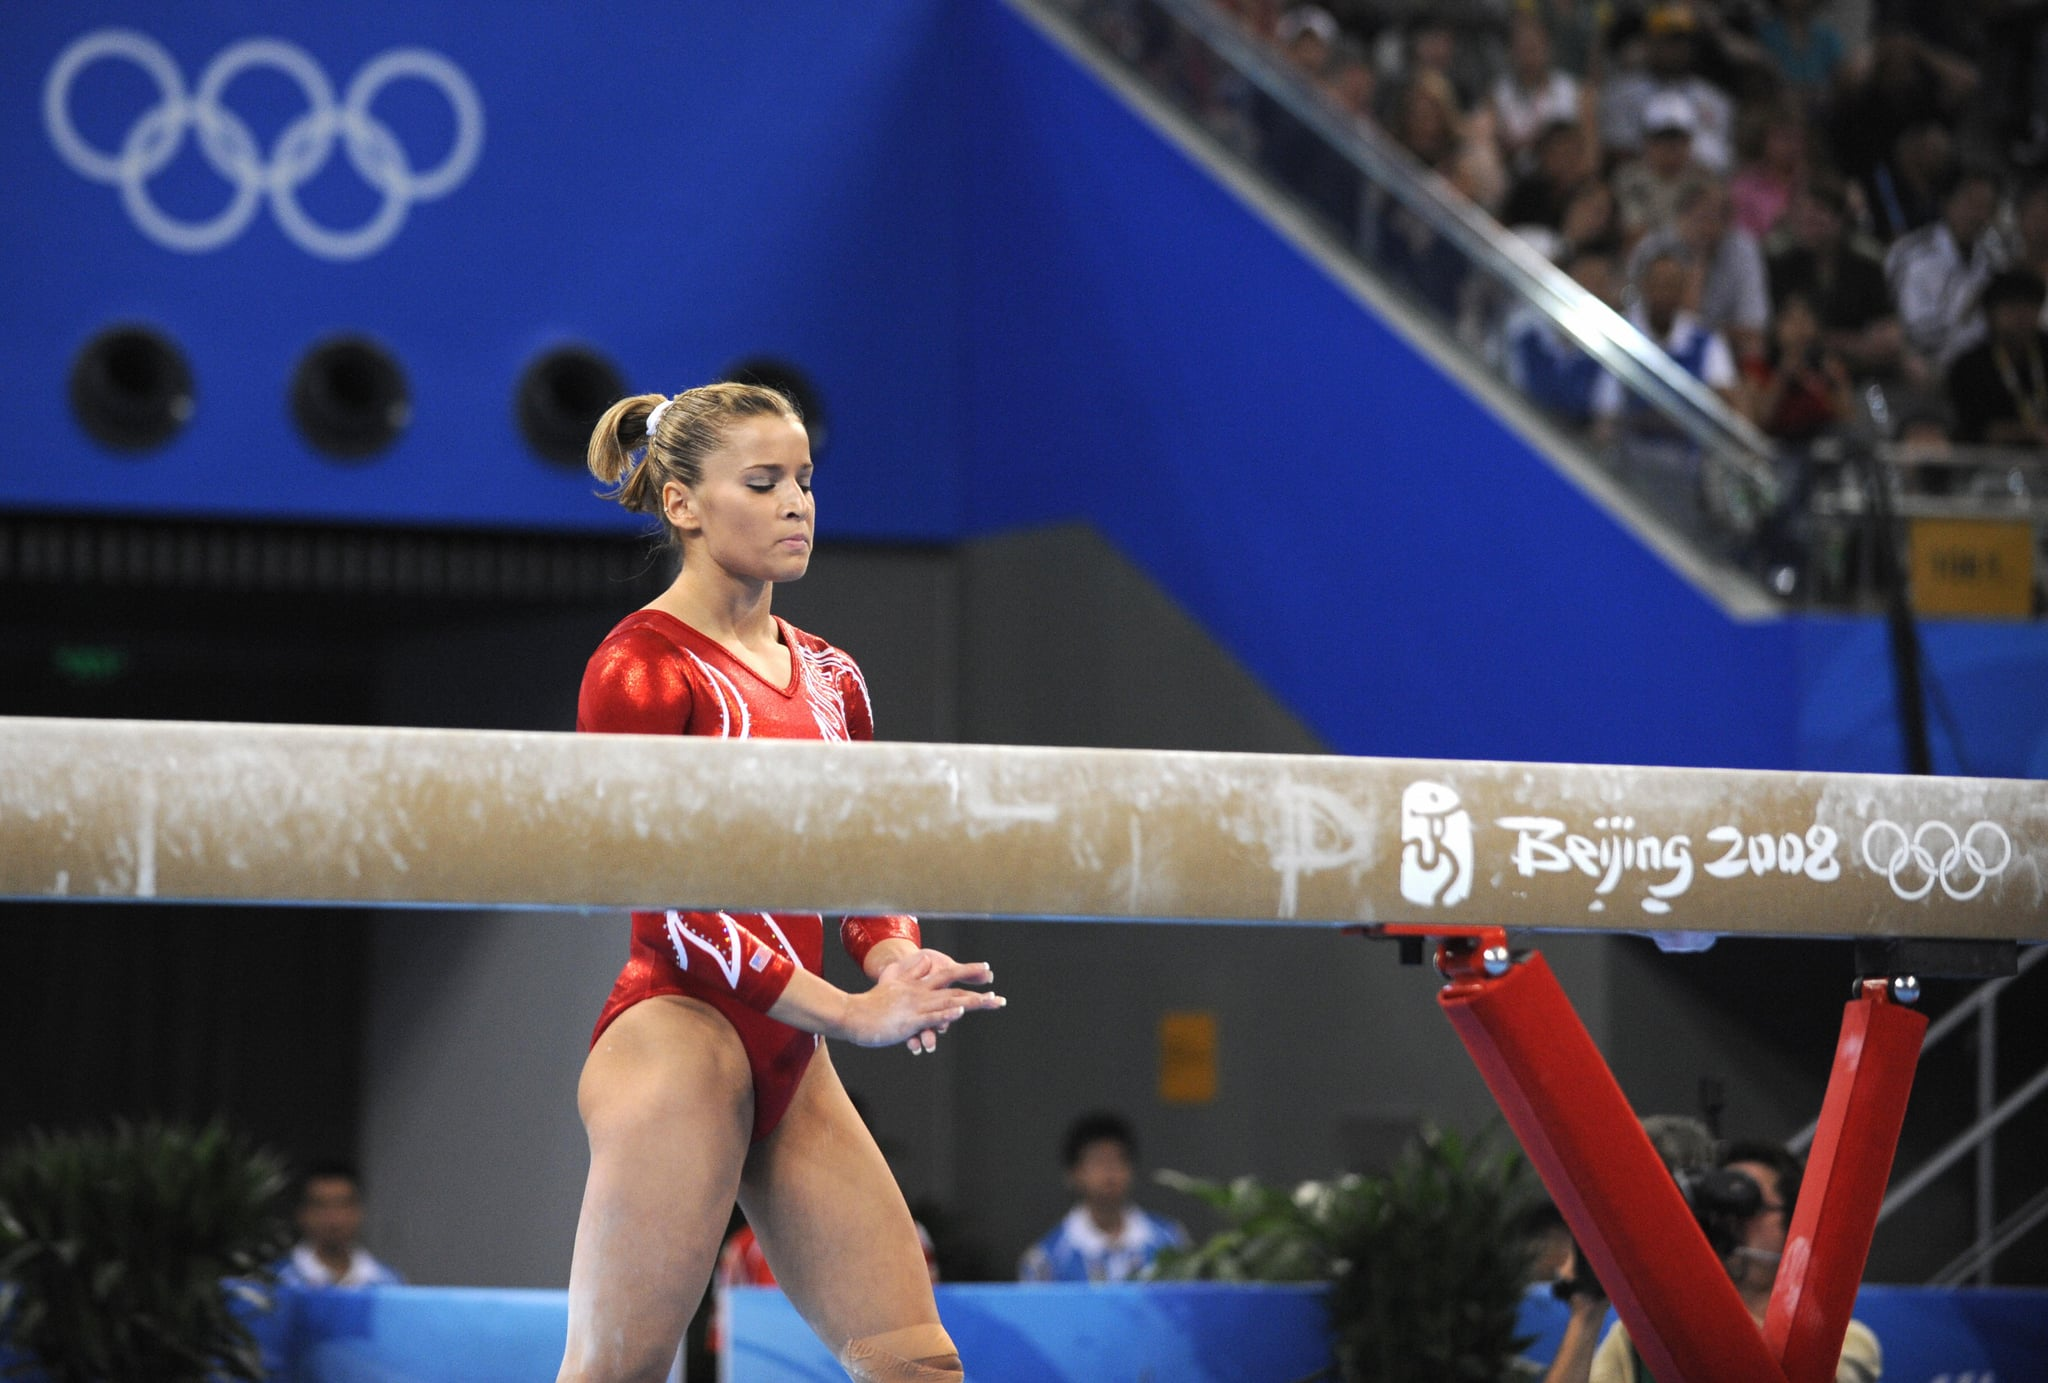 Alicia Sacramone goes back on the beam after falling.